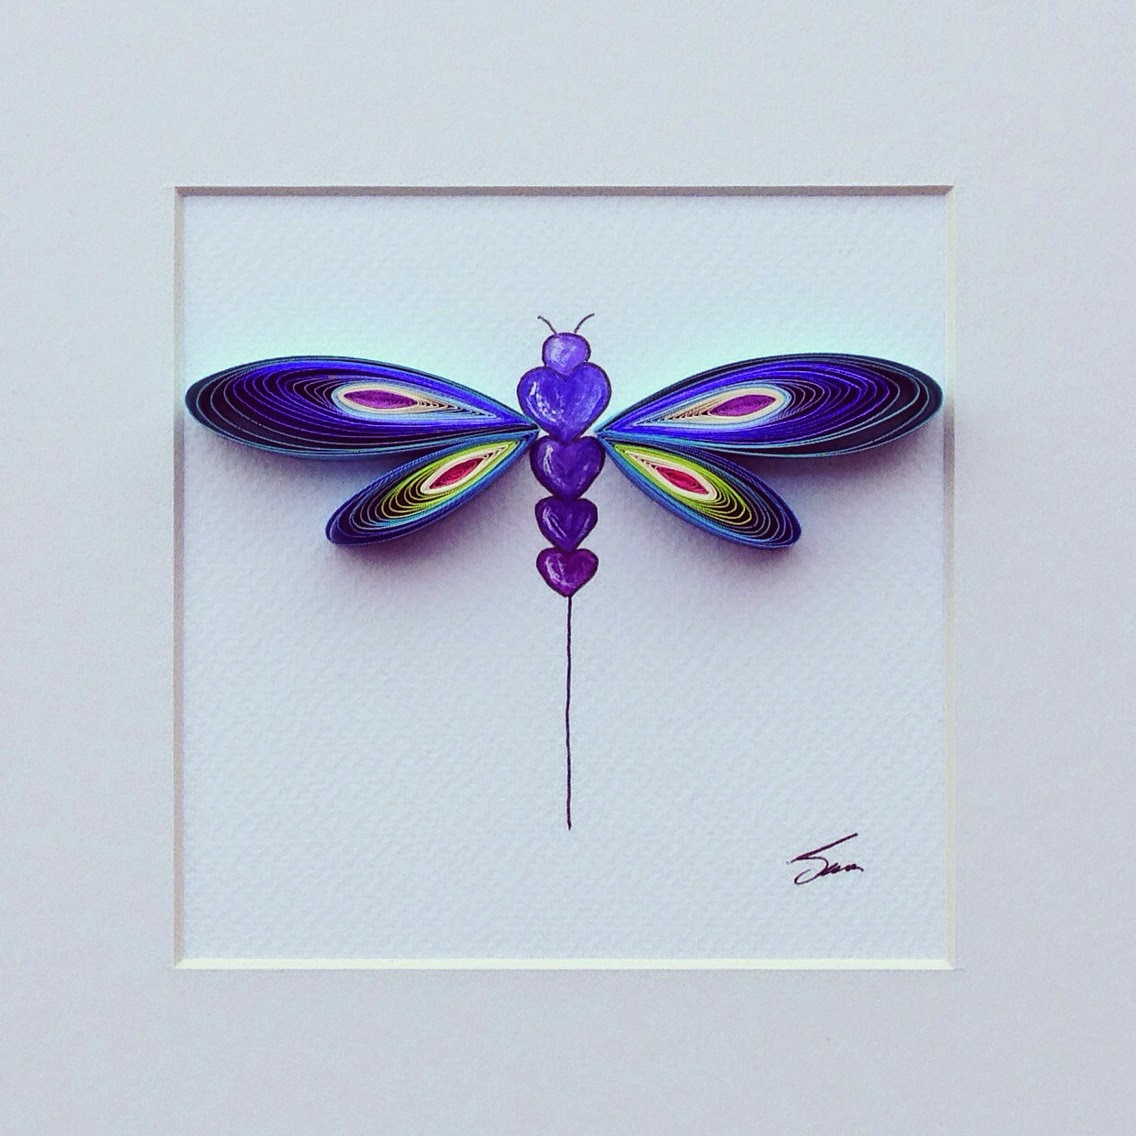 21-Dragonfly-Sena-Runa-Drawing-and-Quilling-a-match-made-in-Heaven-www-designstack-co